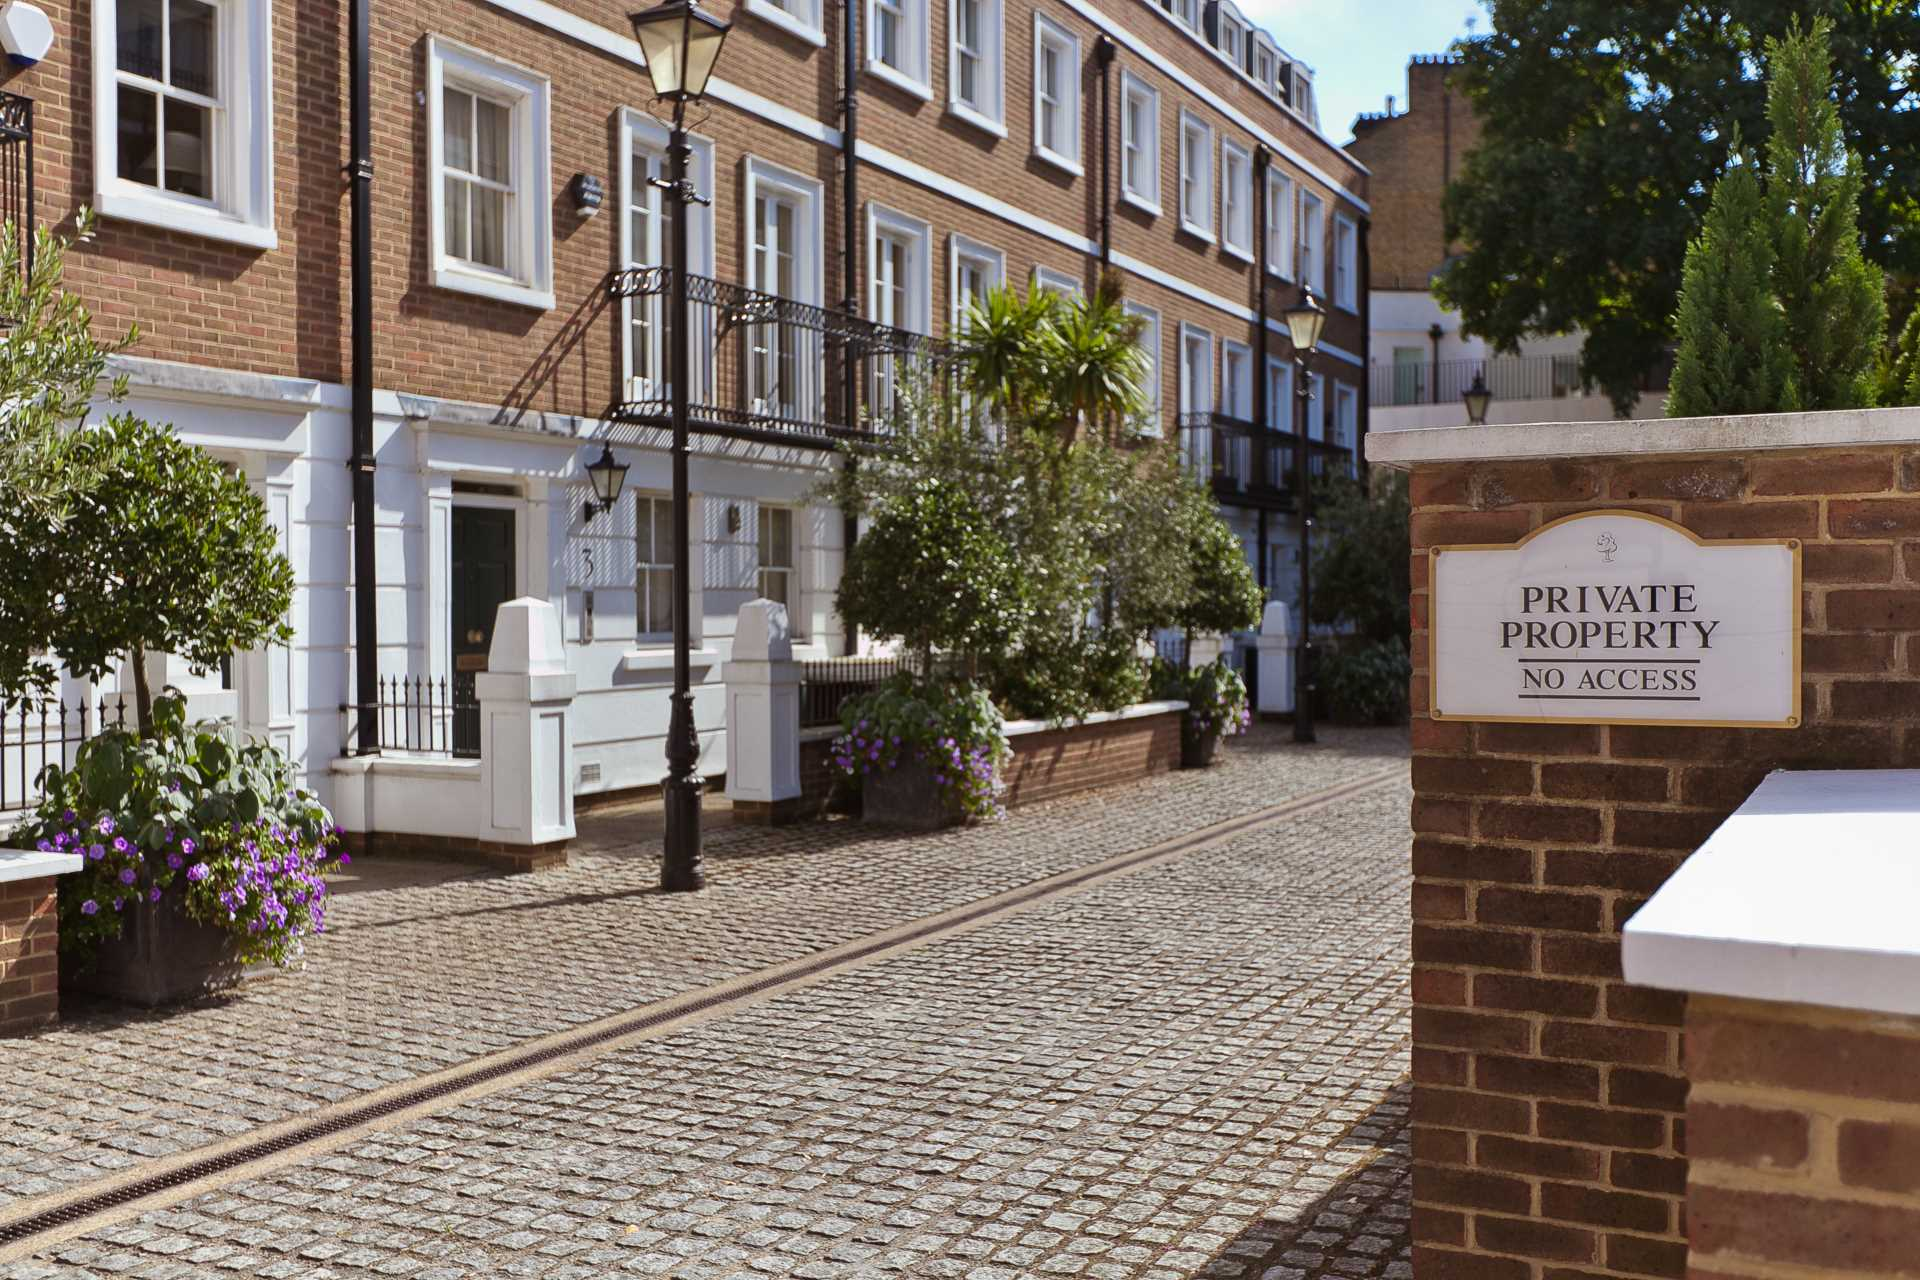 Jo Webster starts property acquisitions for clients